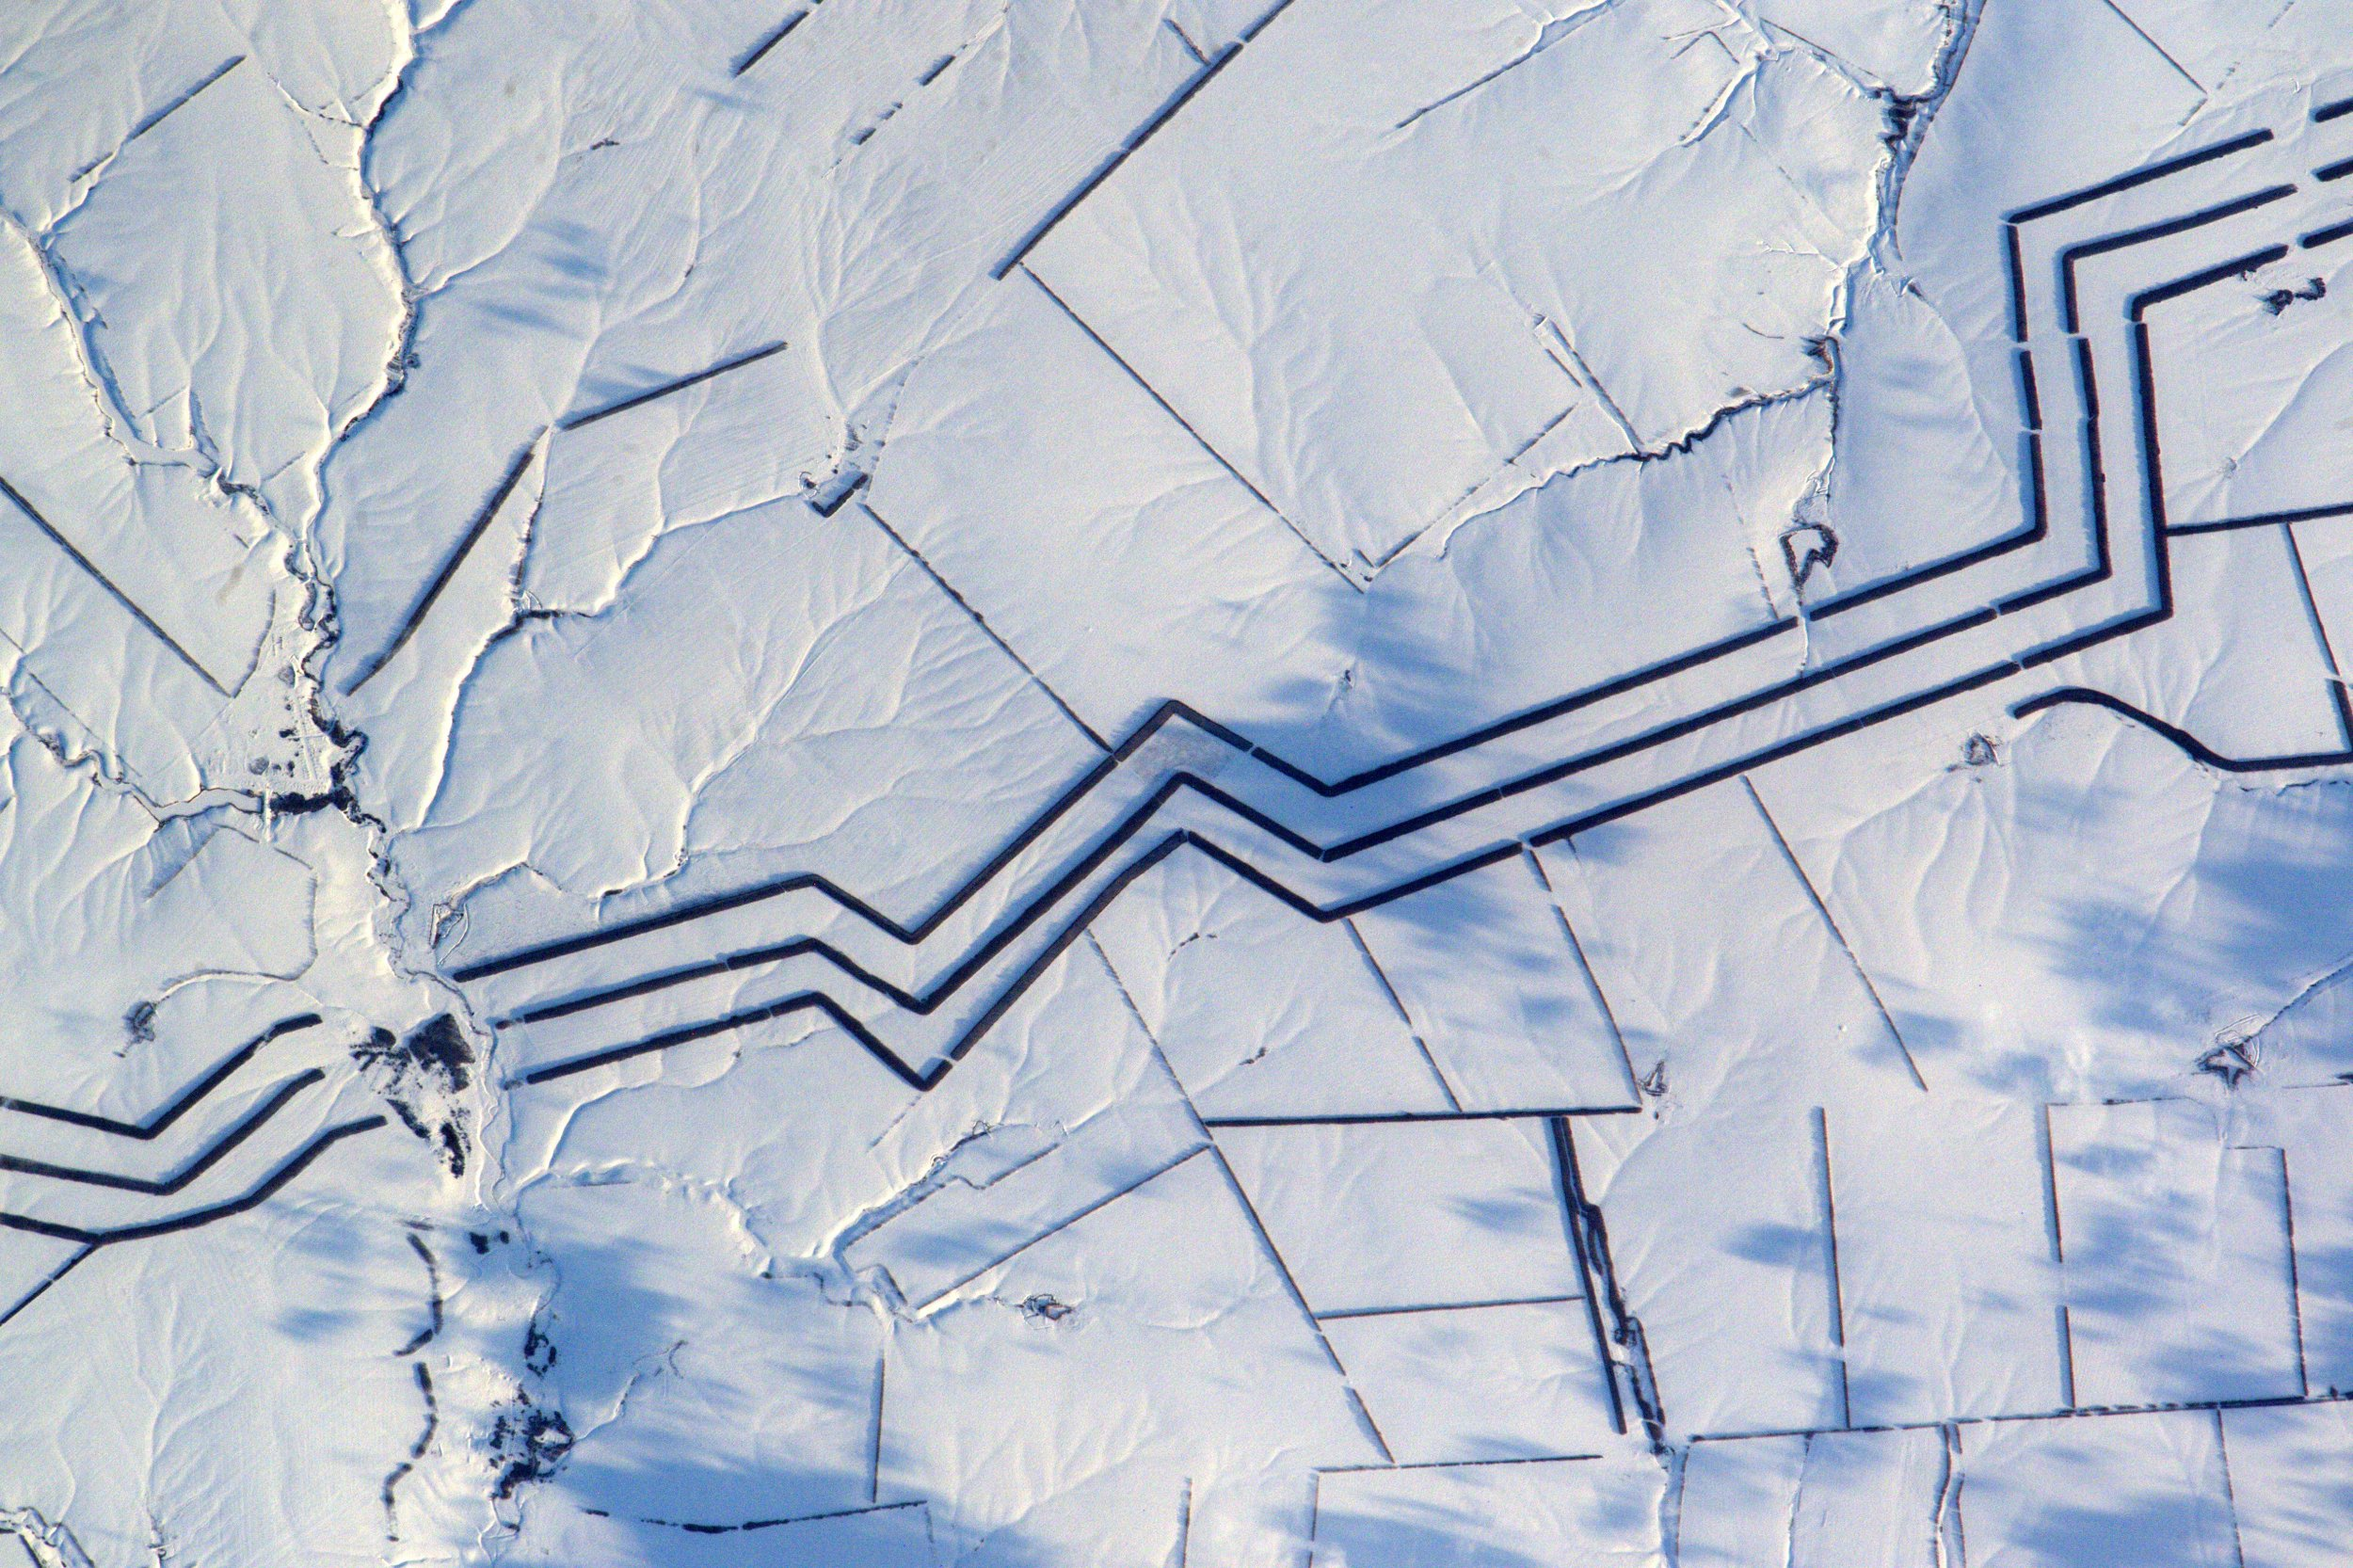 "PICTURE SHOWS: Thomas Pesquet says: ""Minimalist snow art in Russia. I cannot explain these km-long parallel lines"" ....... They look like vibrant abstract artworks - instead these are jaw-dropping images of our beautiful Earth. These are the stunning views French astronaut Thomas Pesquet has captured withing the last few months - including a night-time image of Dublin for St Patrick's Day. They range from what Thomas calls the ""minimalist snow art"" of Russian fields to the reds of the Sahara desert ""as if the paint had flowed over tens of kilometres"". When: 16 Feb 2017 Credit: Thomas Pesquet/ESA/NASA/Cover Images **All usages and enquiries, please contact Glen Marks at glen.marks@cover-images.com - +44 (0)20 3397 3000.All usages and enquiries, please contact Glen Marks at glen.marks@cover-images.com - +44 (0)20 3397 3000.CREDIT: Thomas Pesquet/ESA/NASA/Cover Images. Editorial use only**"